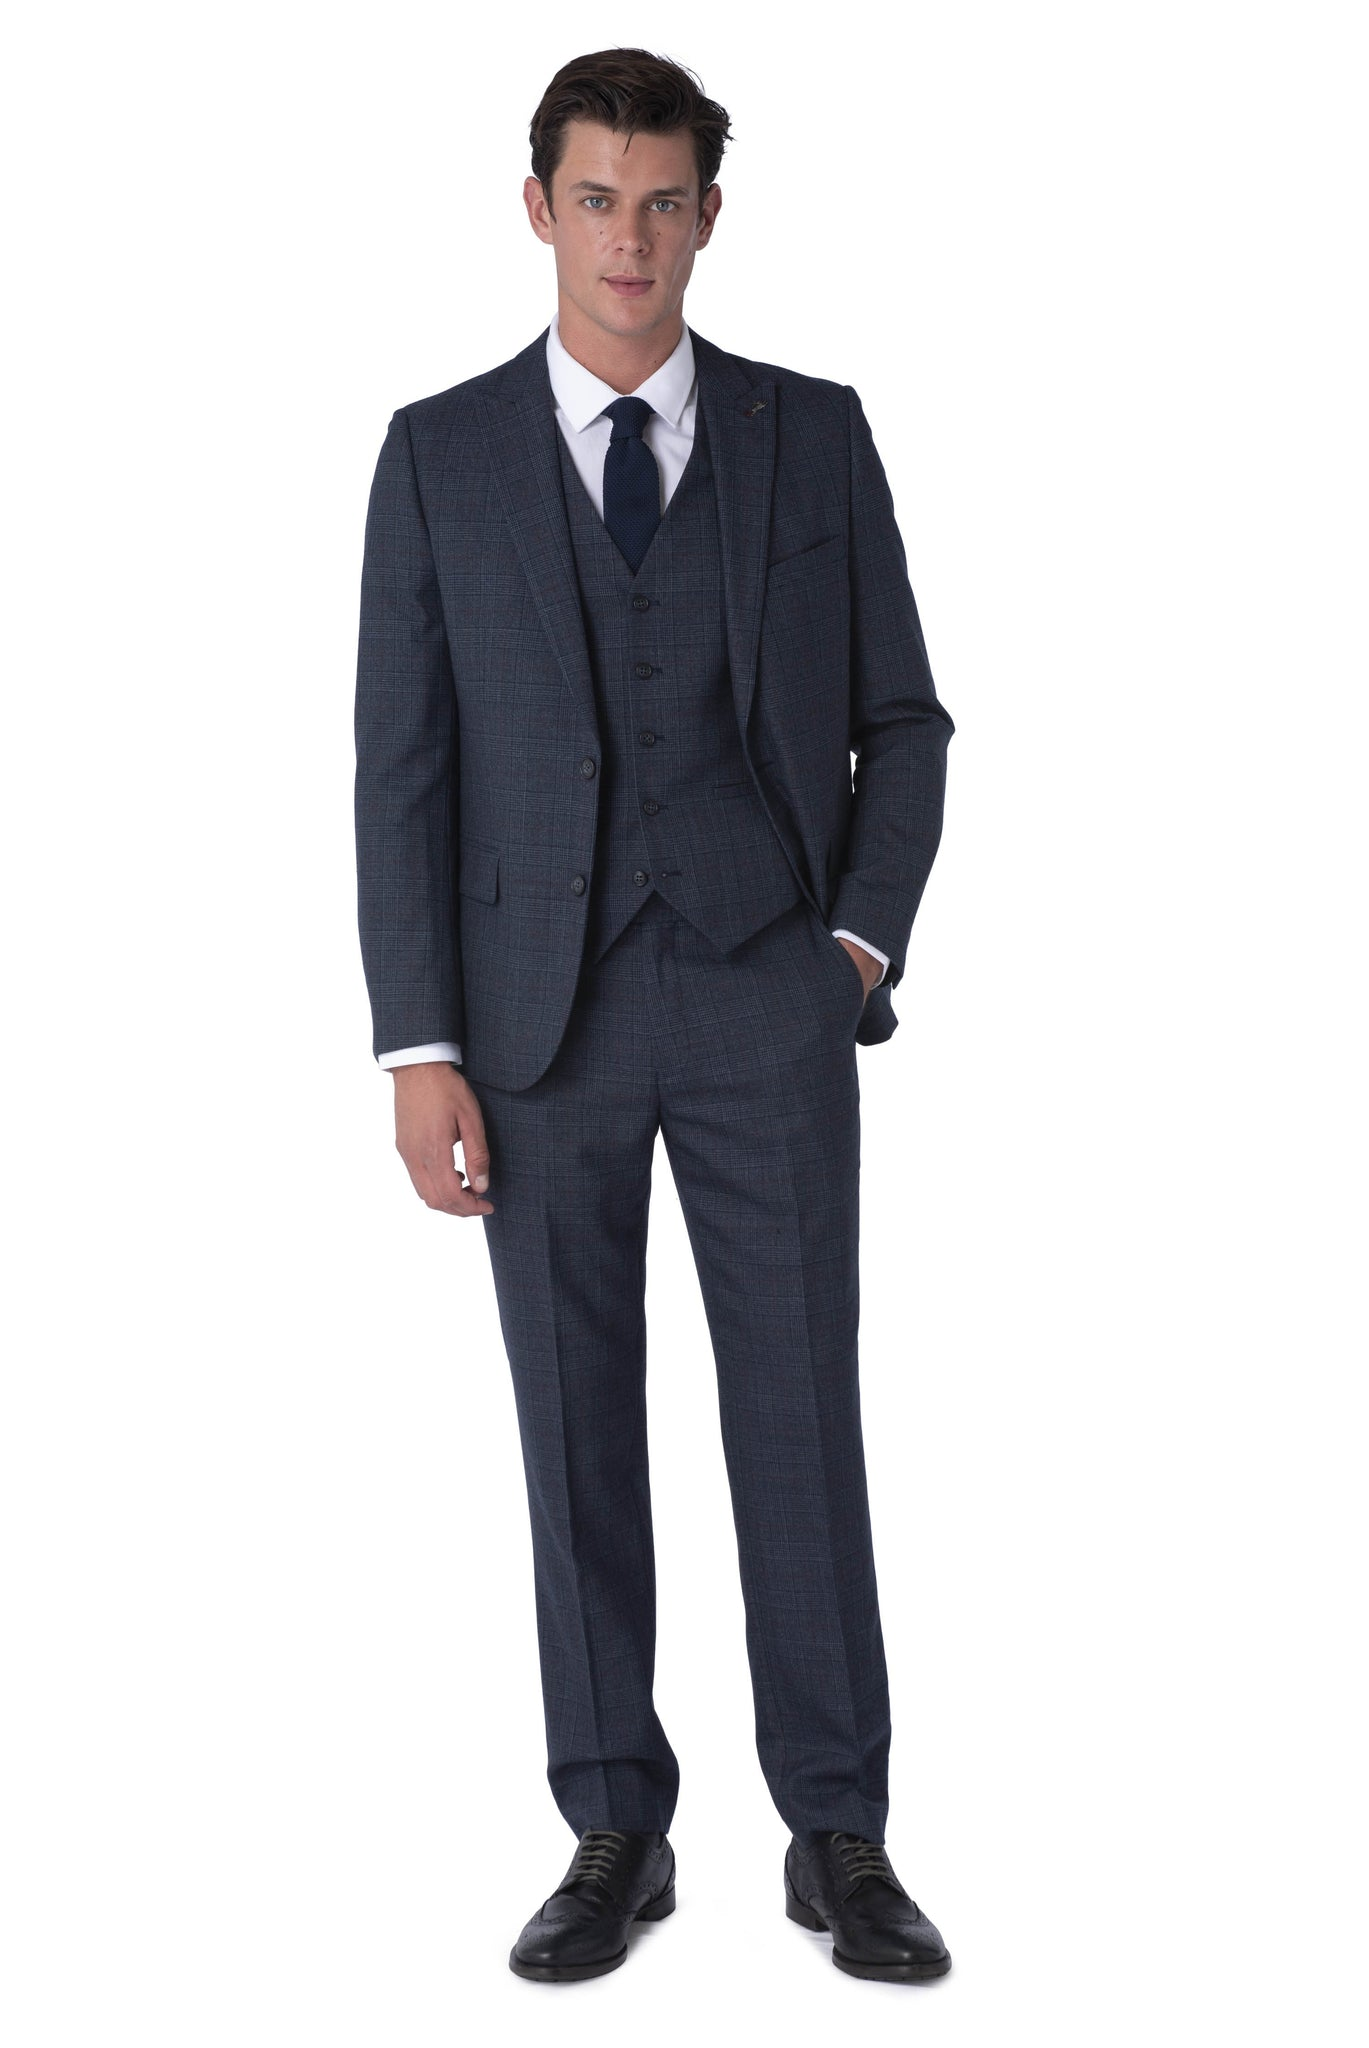 Front of FINN Blue Check 100% Wool Three Piece Suit